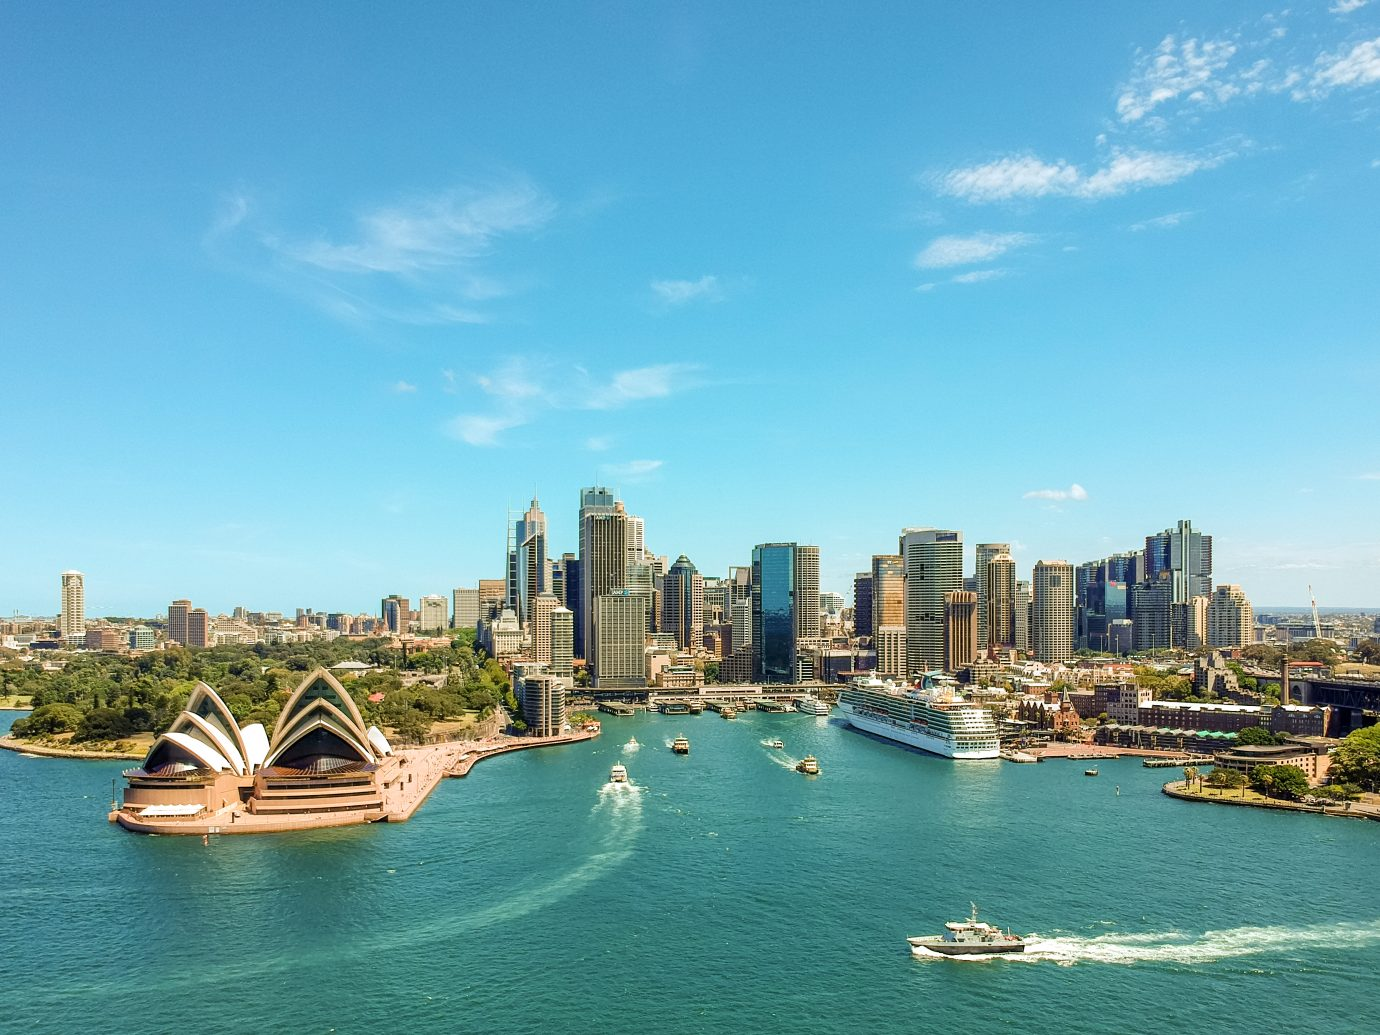 view of the Sydney Harbour with the Opera House